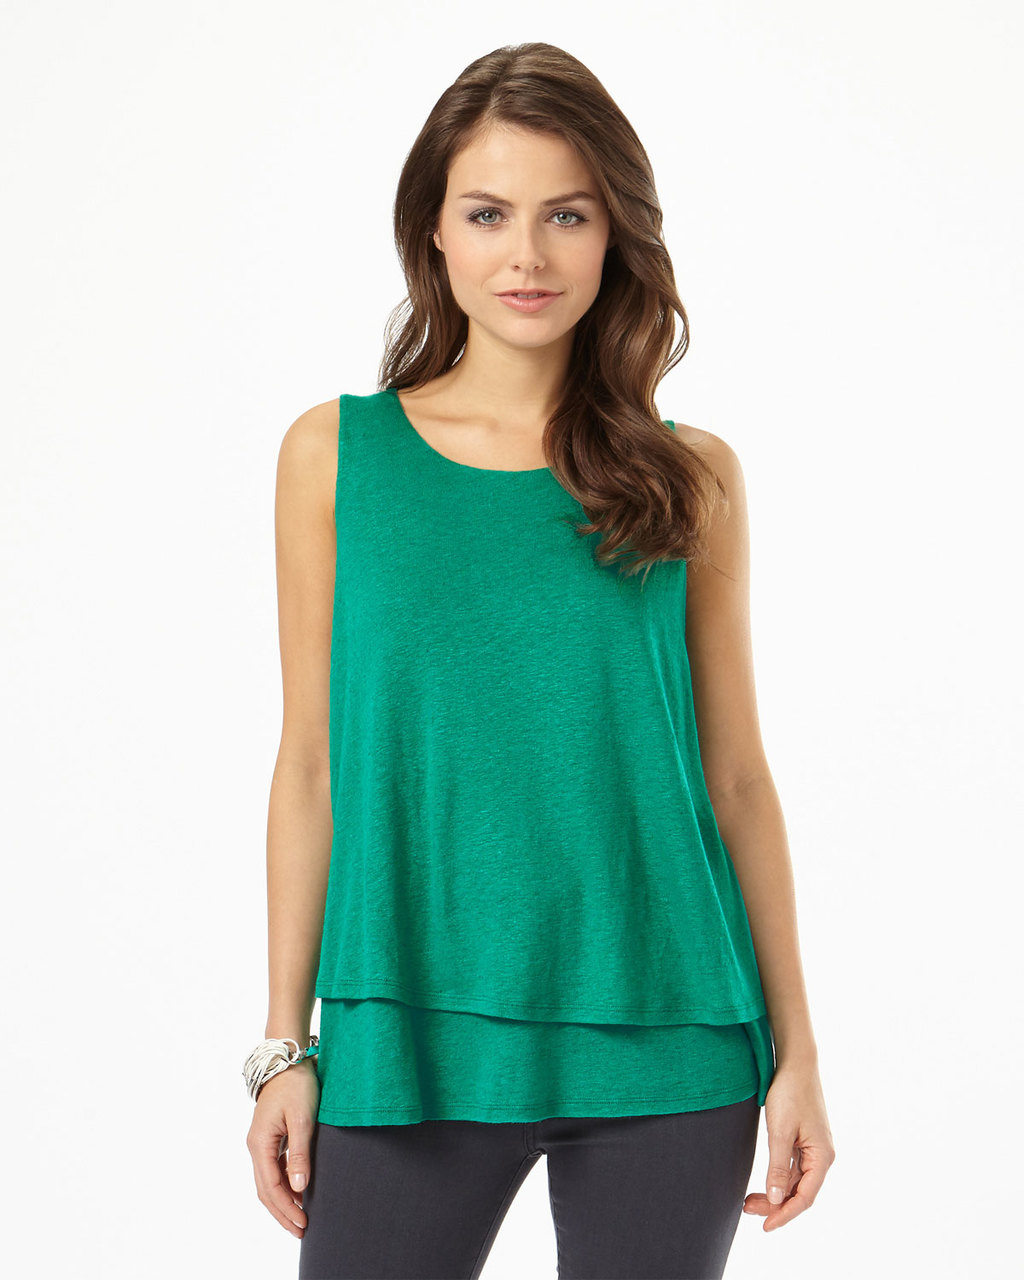 Billi Double Layer Top - pattern: plain; sleeve style: sleeveless; predominant colour: emerald green; occasions: casual; length: standard; style: top; fit: body skimming; neckline: crew; sleeve length: sleeveless; pattern type: fabric; texture group: other - light to midweight; fibres: viscose/rayon - mix; season: s/s 2016; wardrobe: highlight